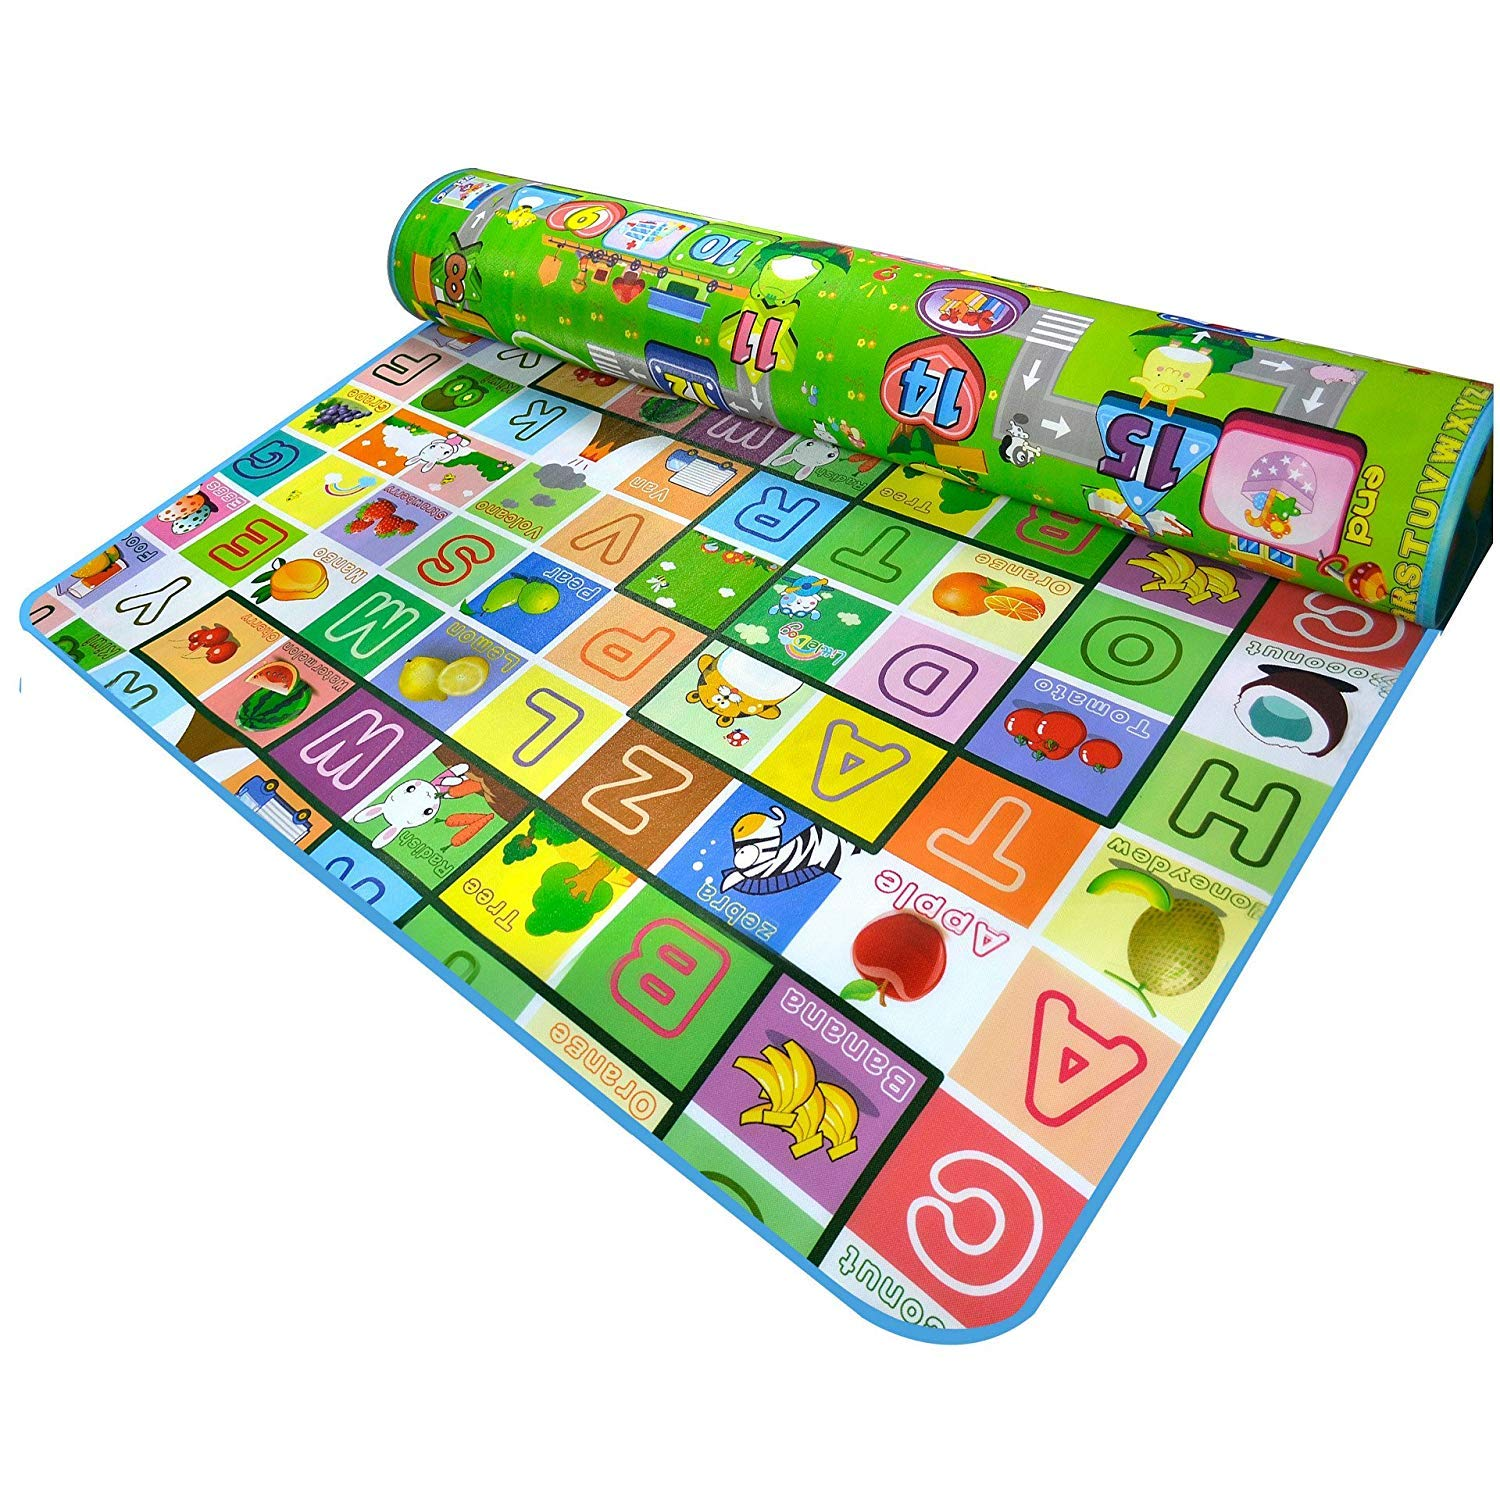 Non-Slip Waterproof Baby Care Mat Kids Play Mat Kids Crawling Pad Kids Playing Mat Kids Game Mat for Indoor Outdoor Use 200X180cm (Fruit Alphabet + Monopoly)